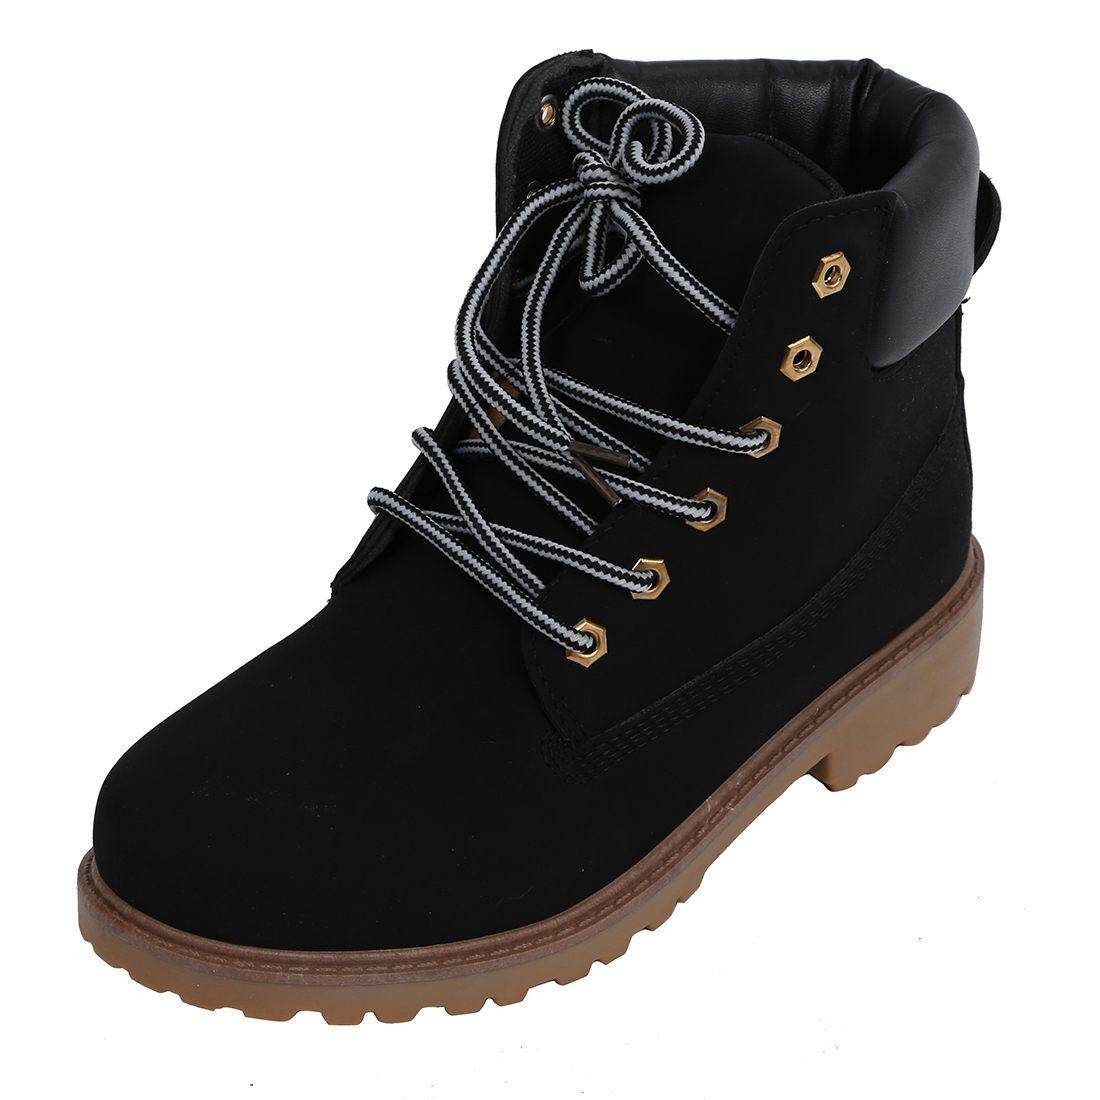 Men High Top Winter Boots Leather Waterproof Combat Hiking Work Ankle Shoes  Size44 black 8399ee0a17ee